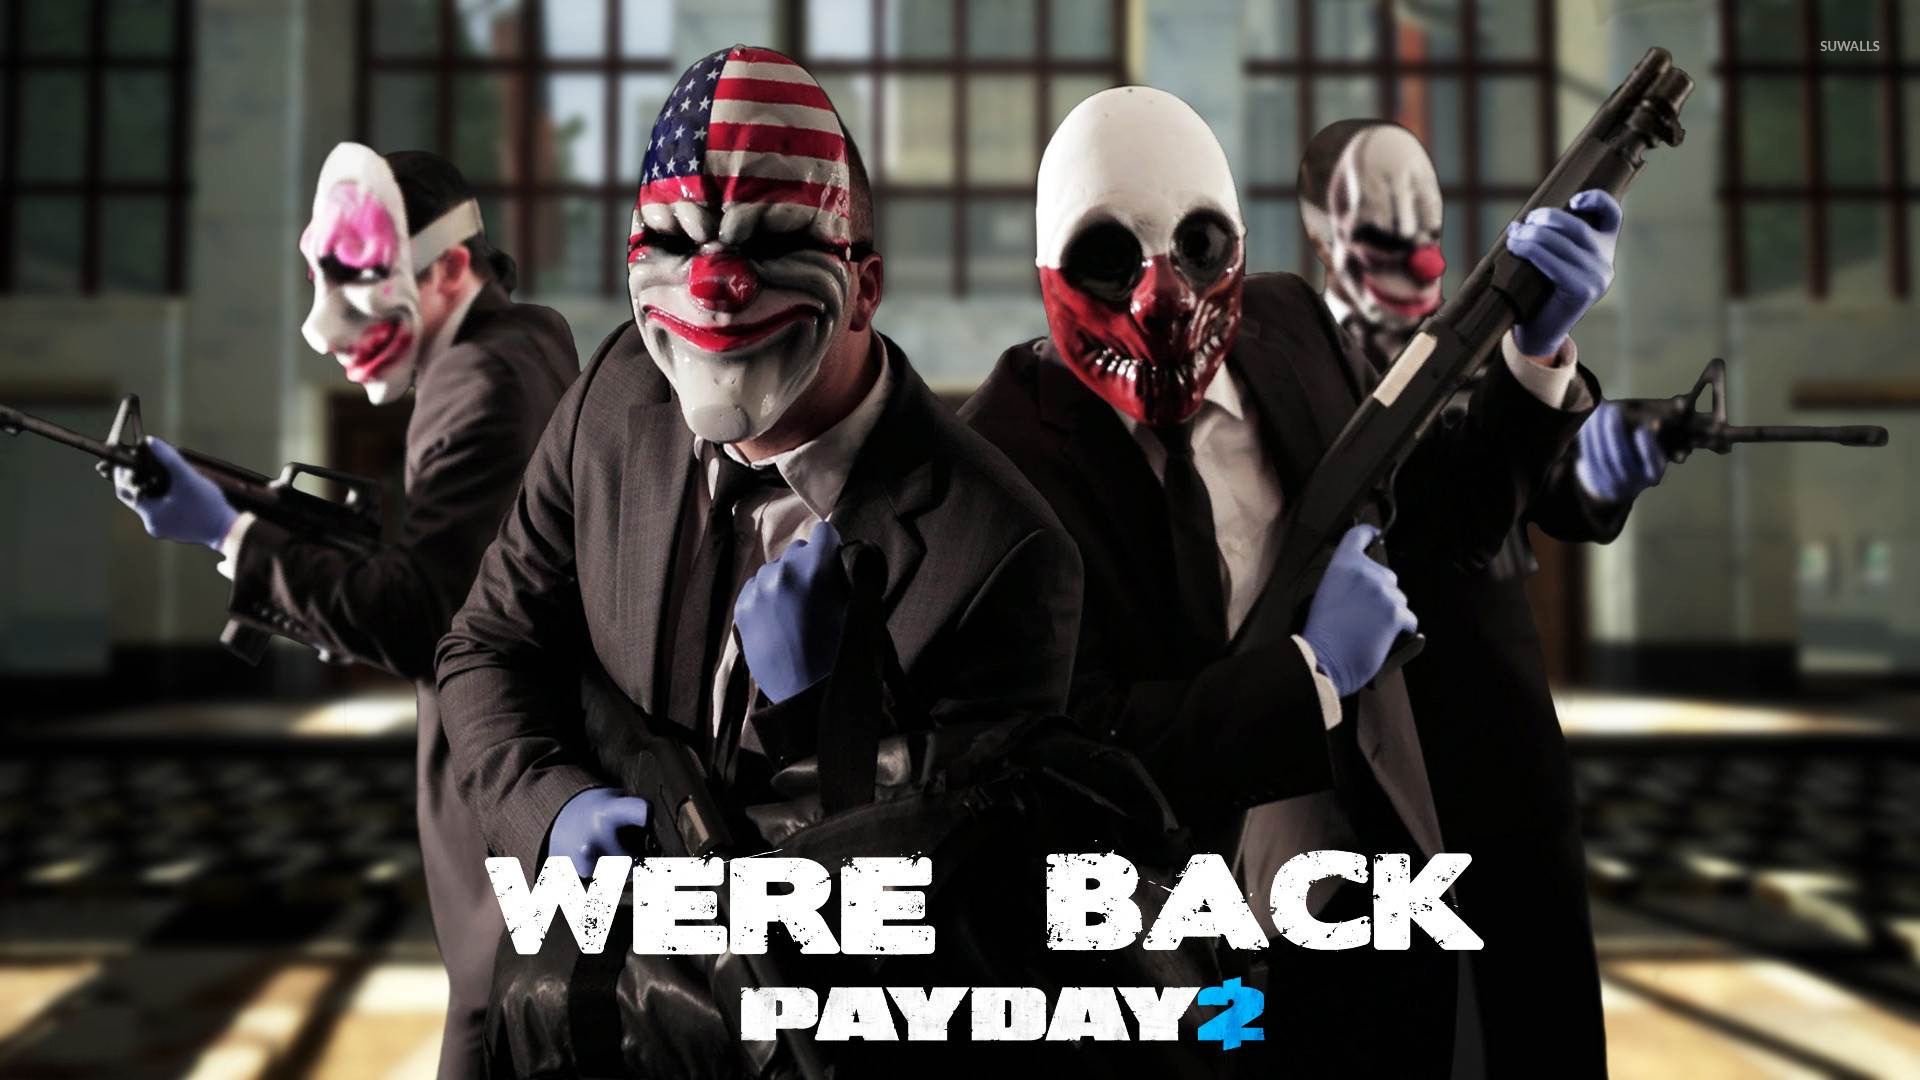 Payday 2 4 Wallpaper Game Wallpapers 22935